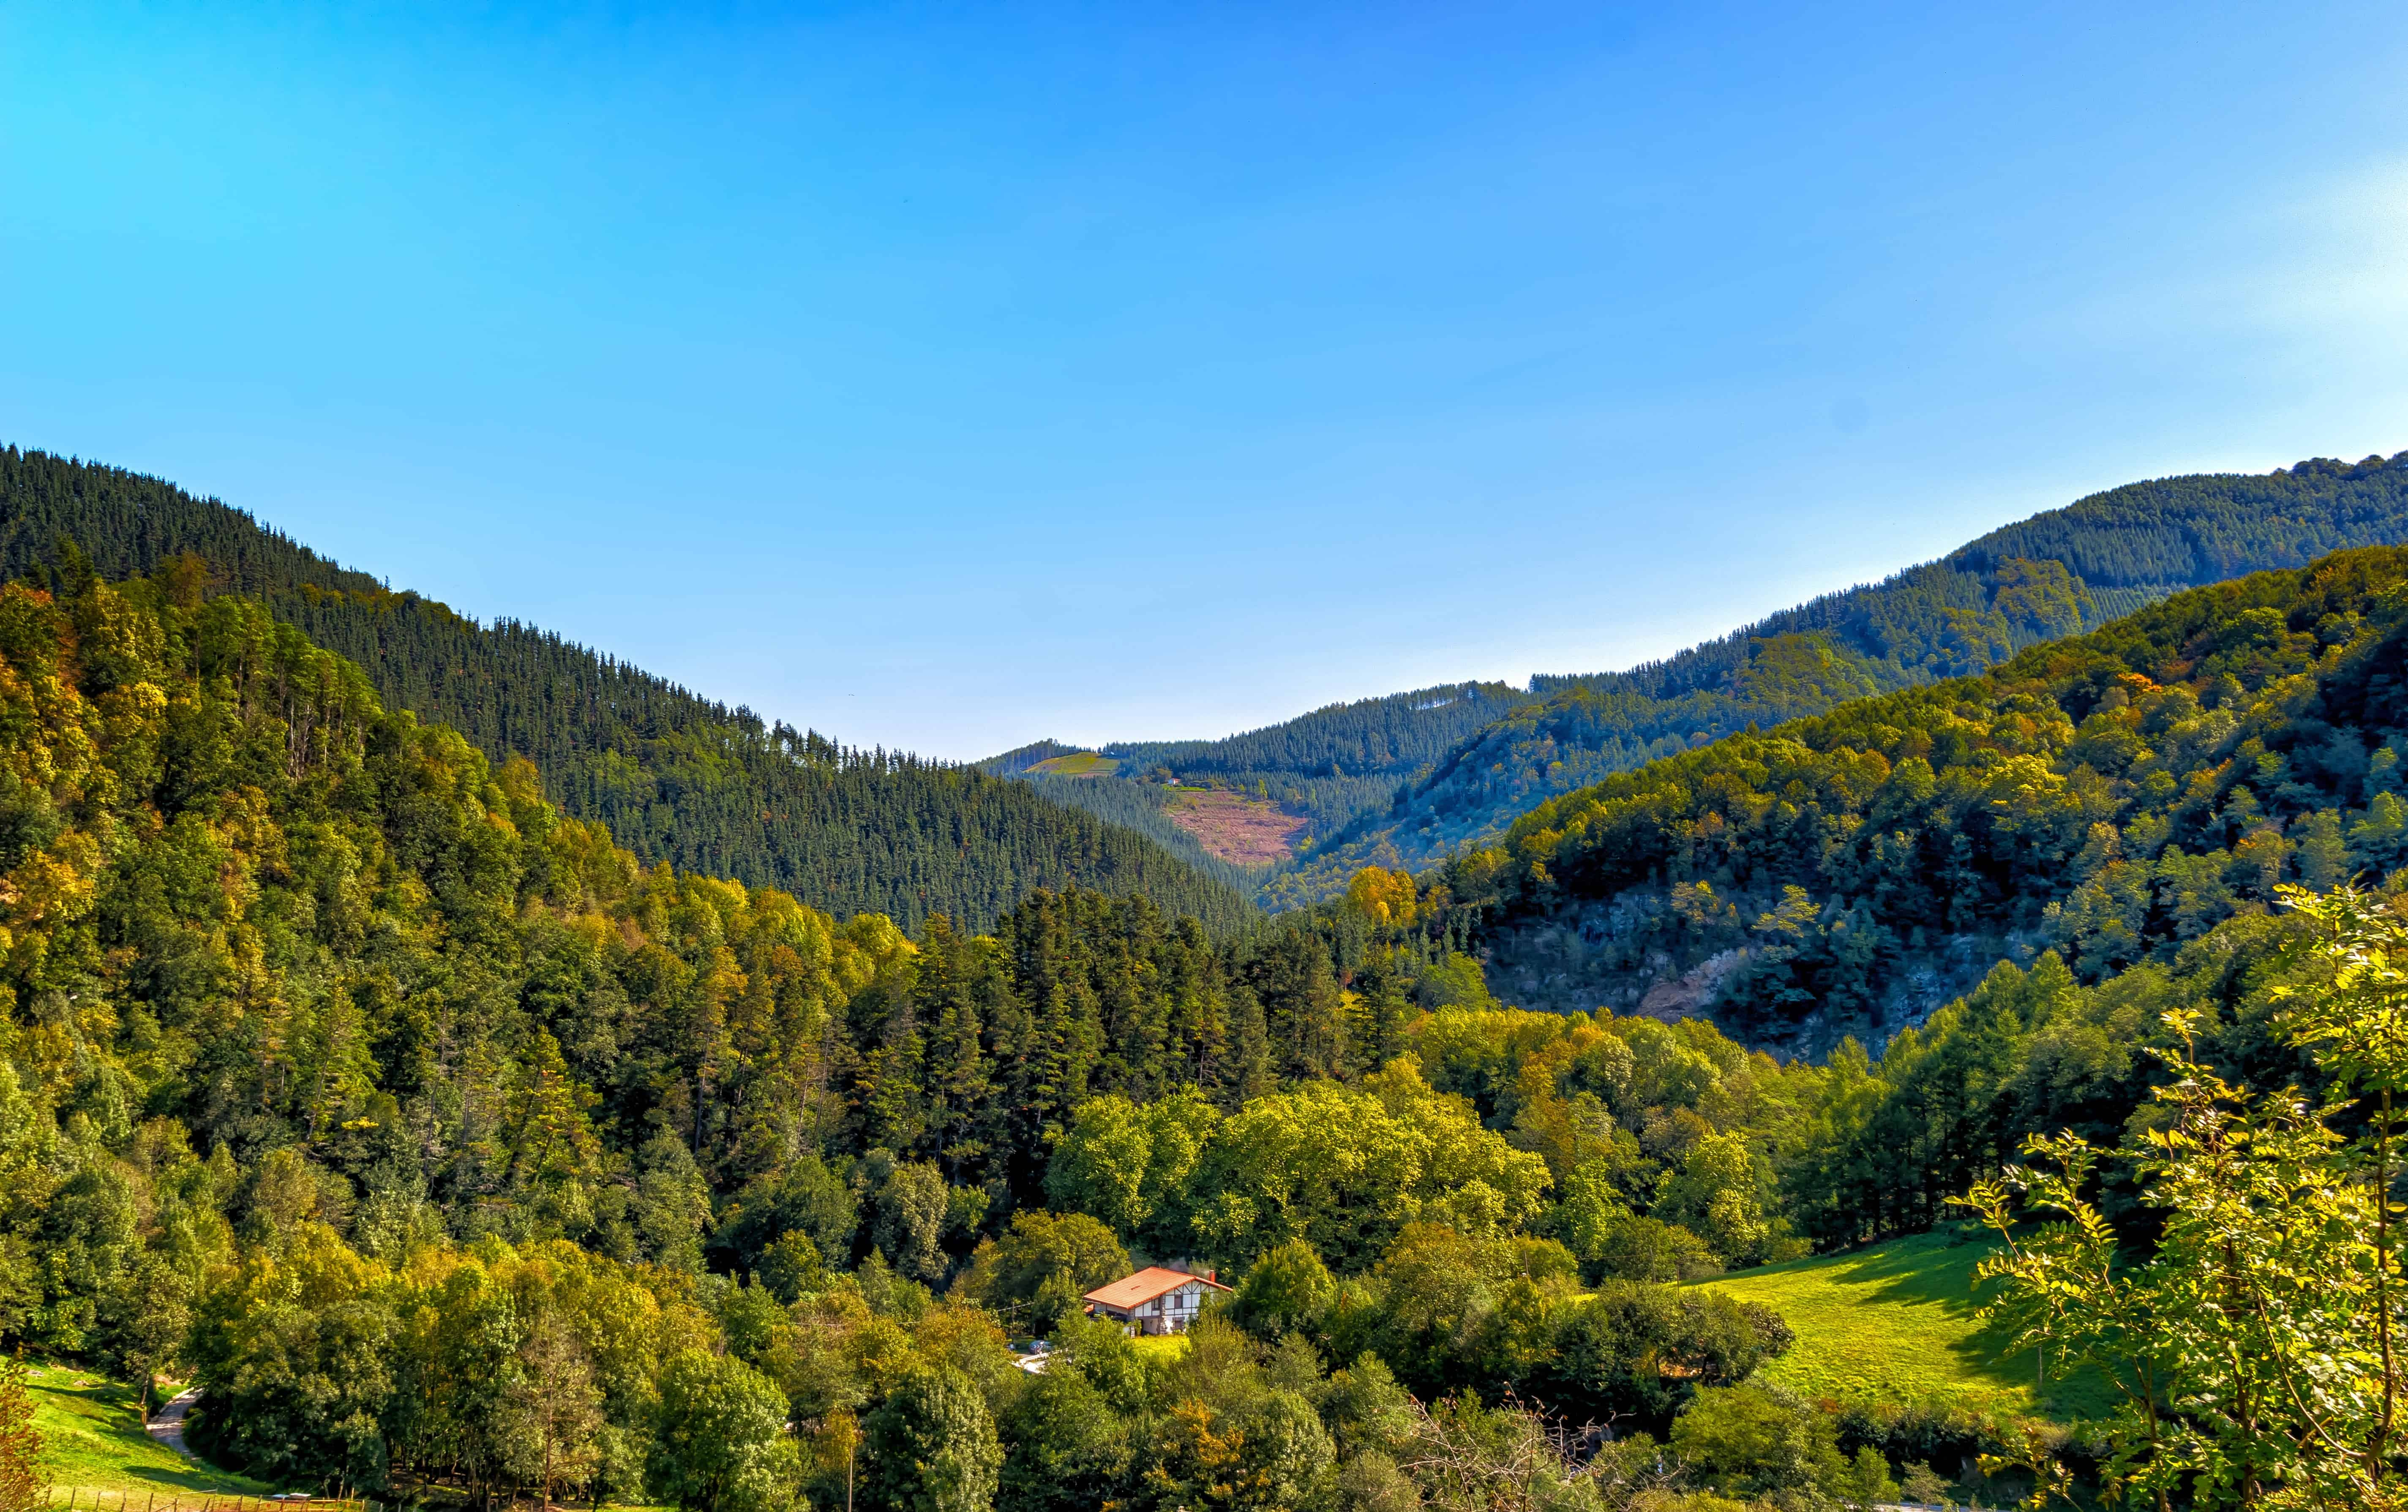 Free picture: sky, nature, wood, mountain, landscape, tree, valley ...